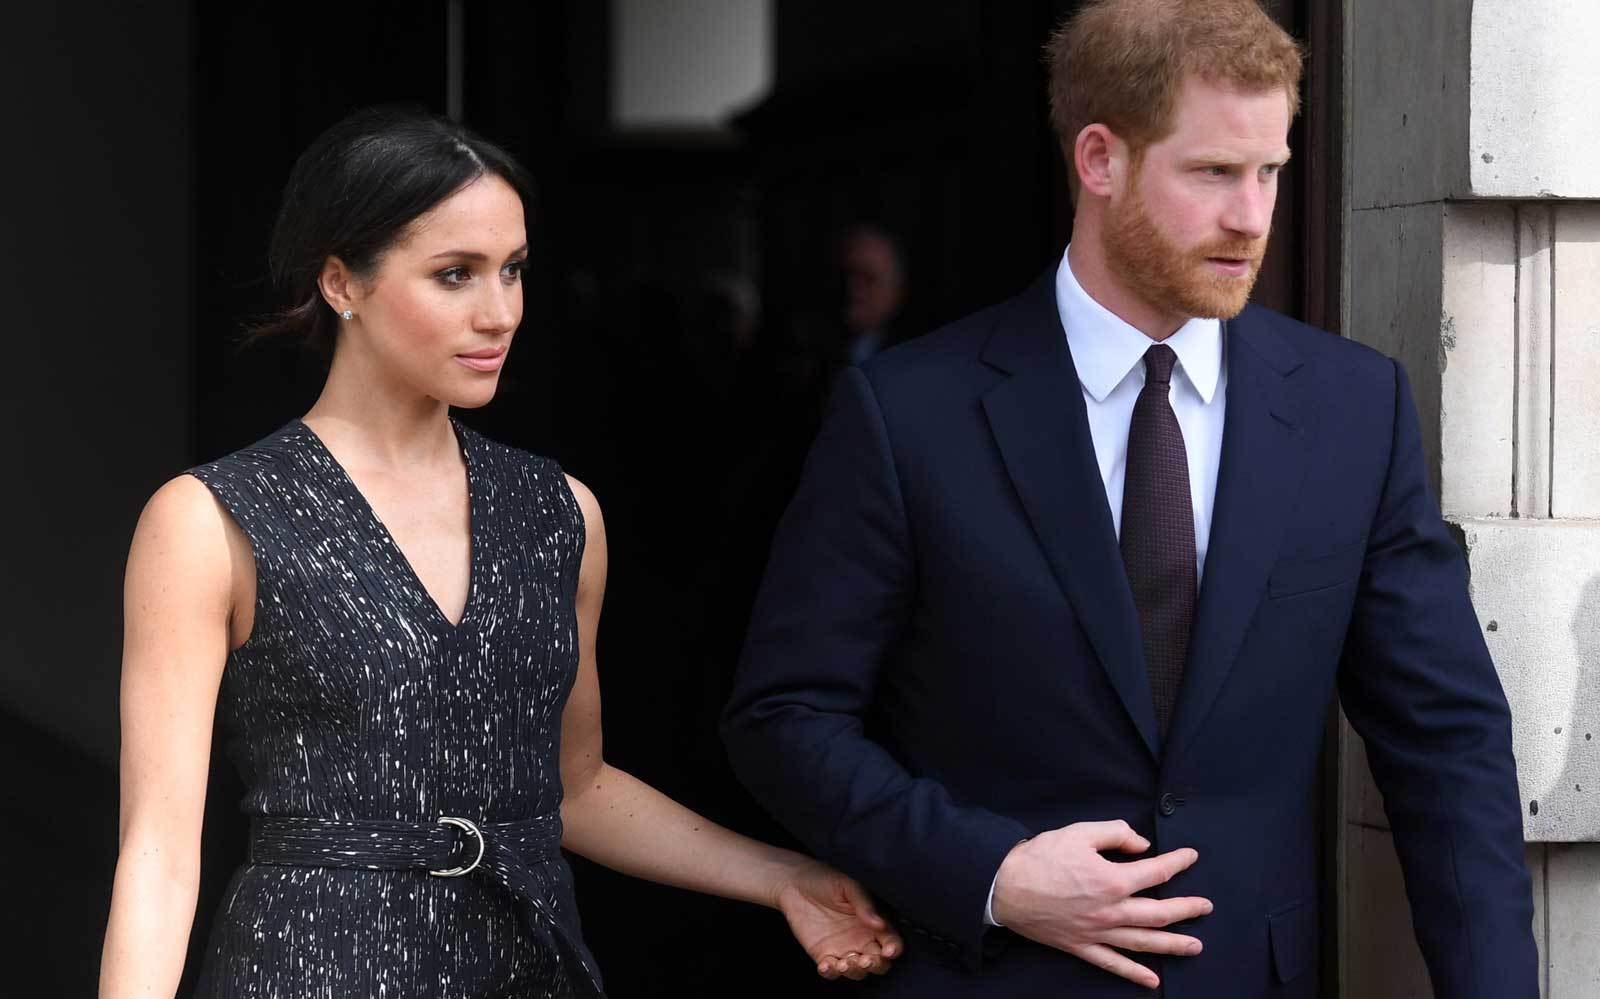 Britain's Prince Harry (R) and his US fiancee Meghan Markle